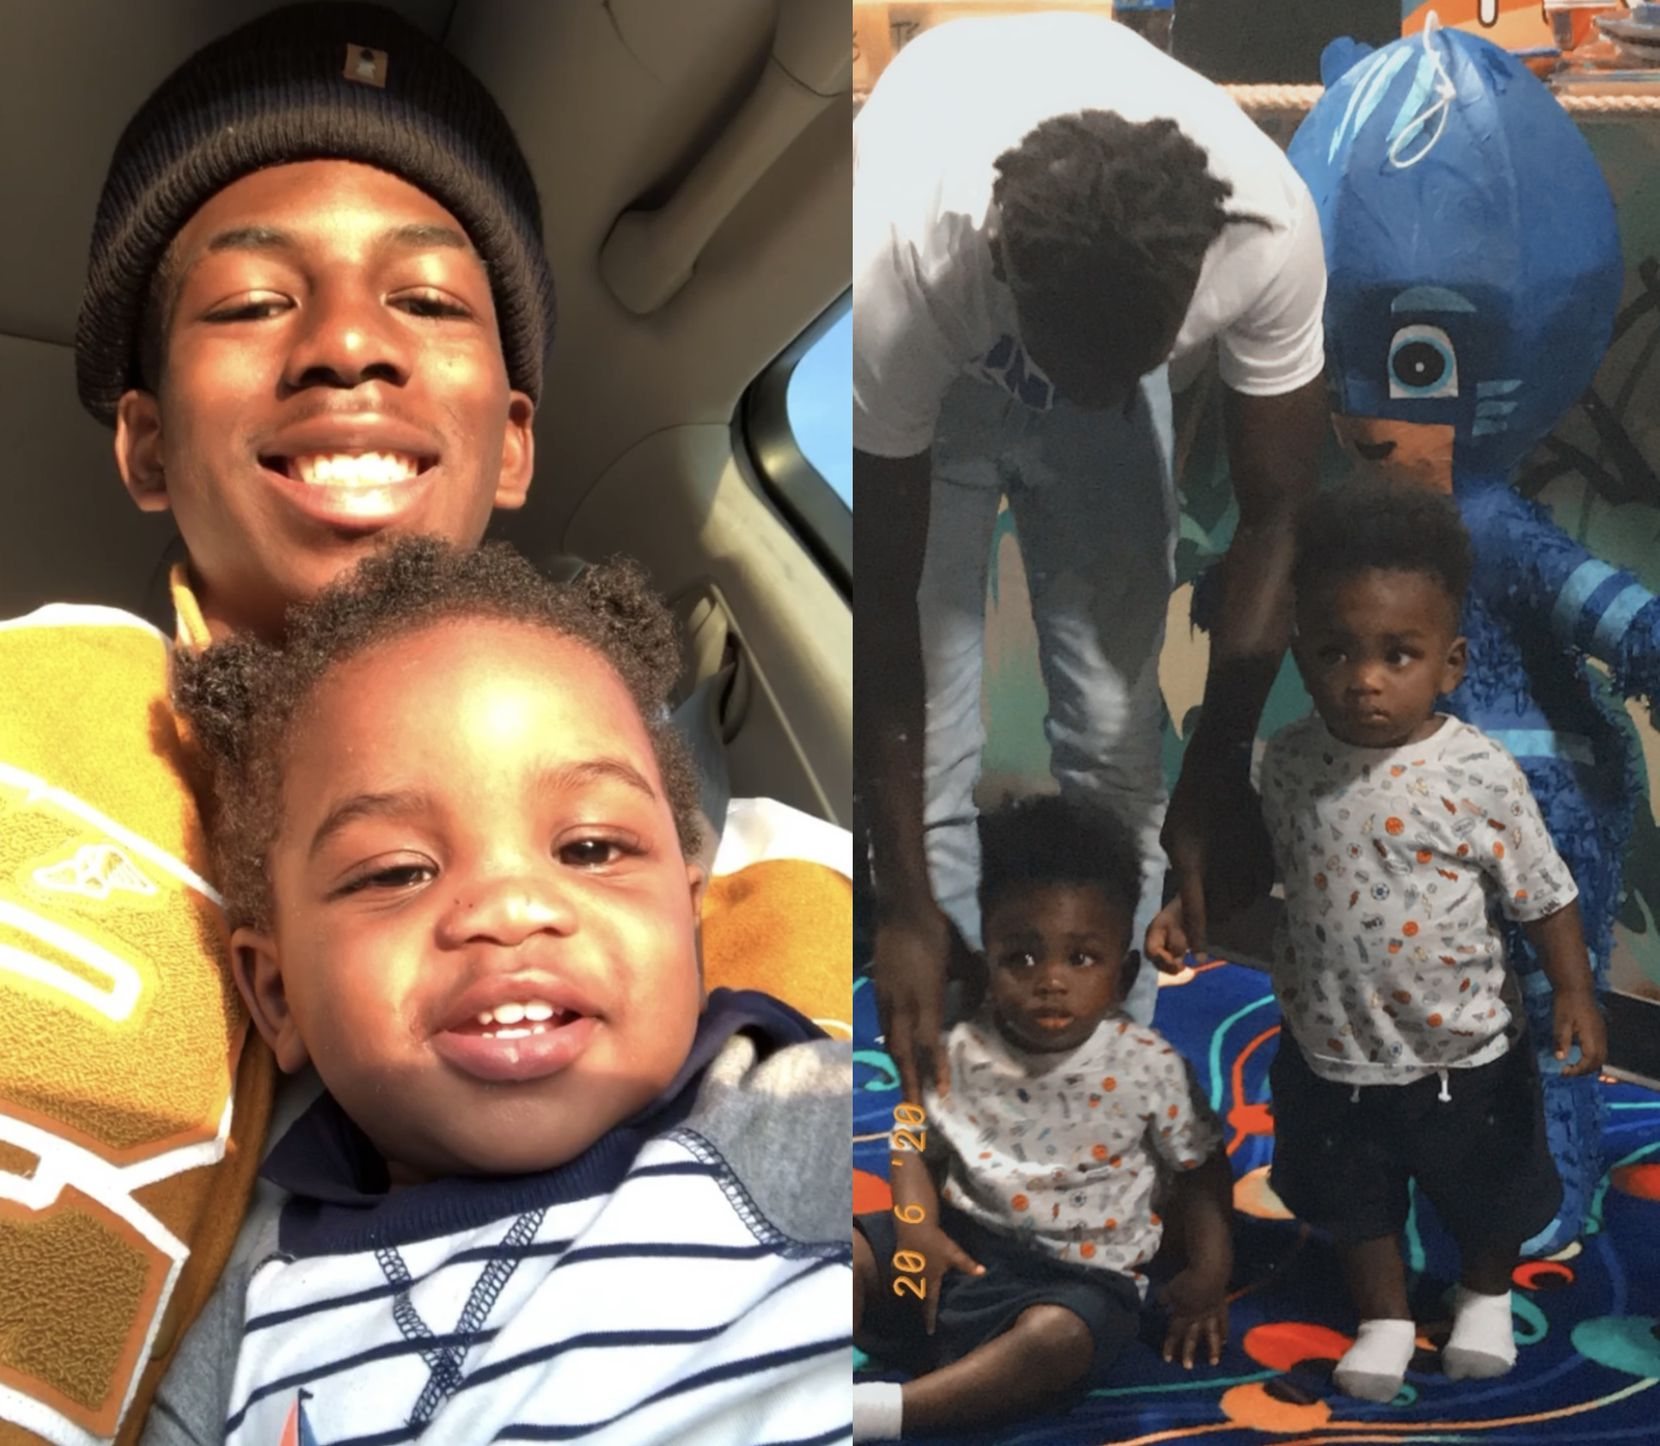 Senior South Oak Cliff football player Justyn Harrison is pictured with his identical twin sons, Jayce and Justyn Jr. (Courtesy/Tandra Rogers)